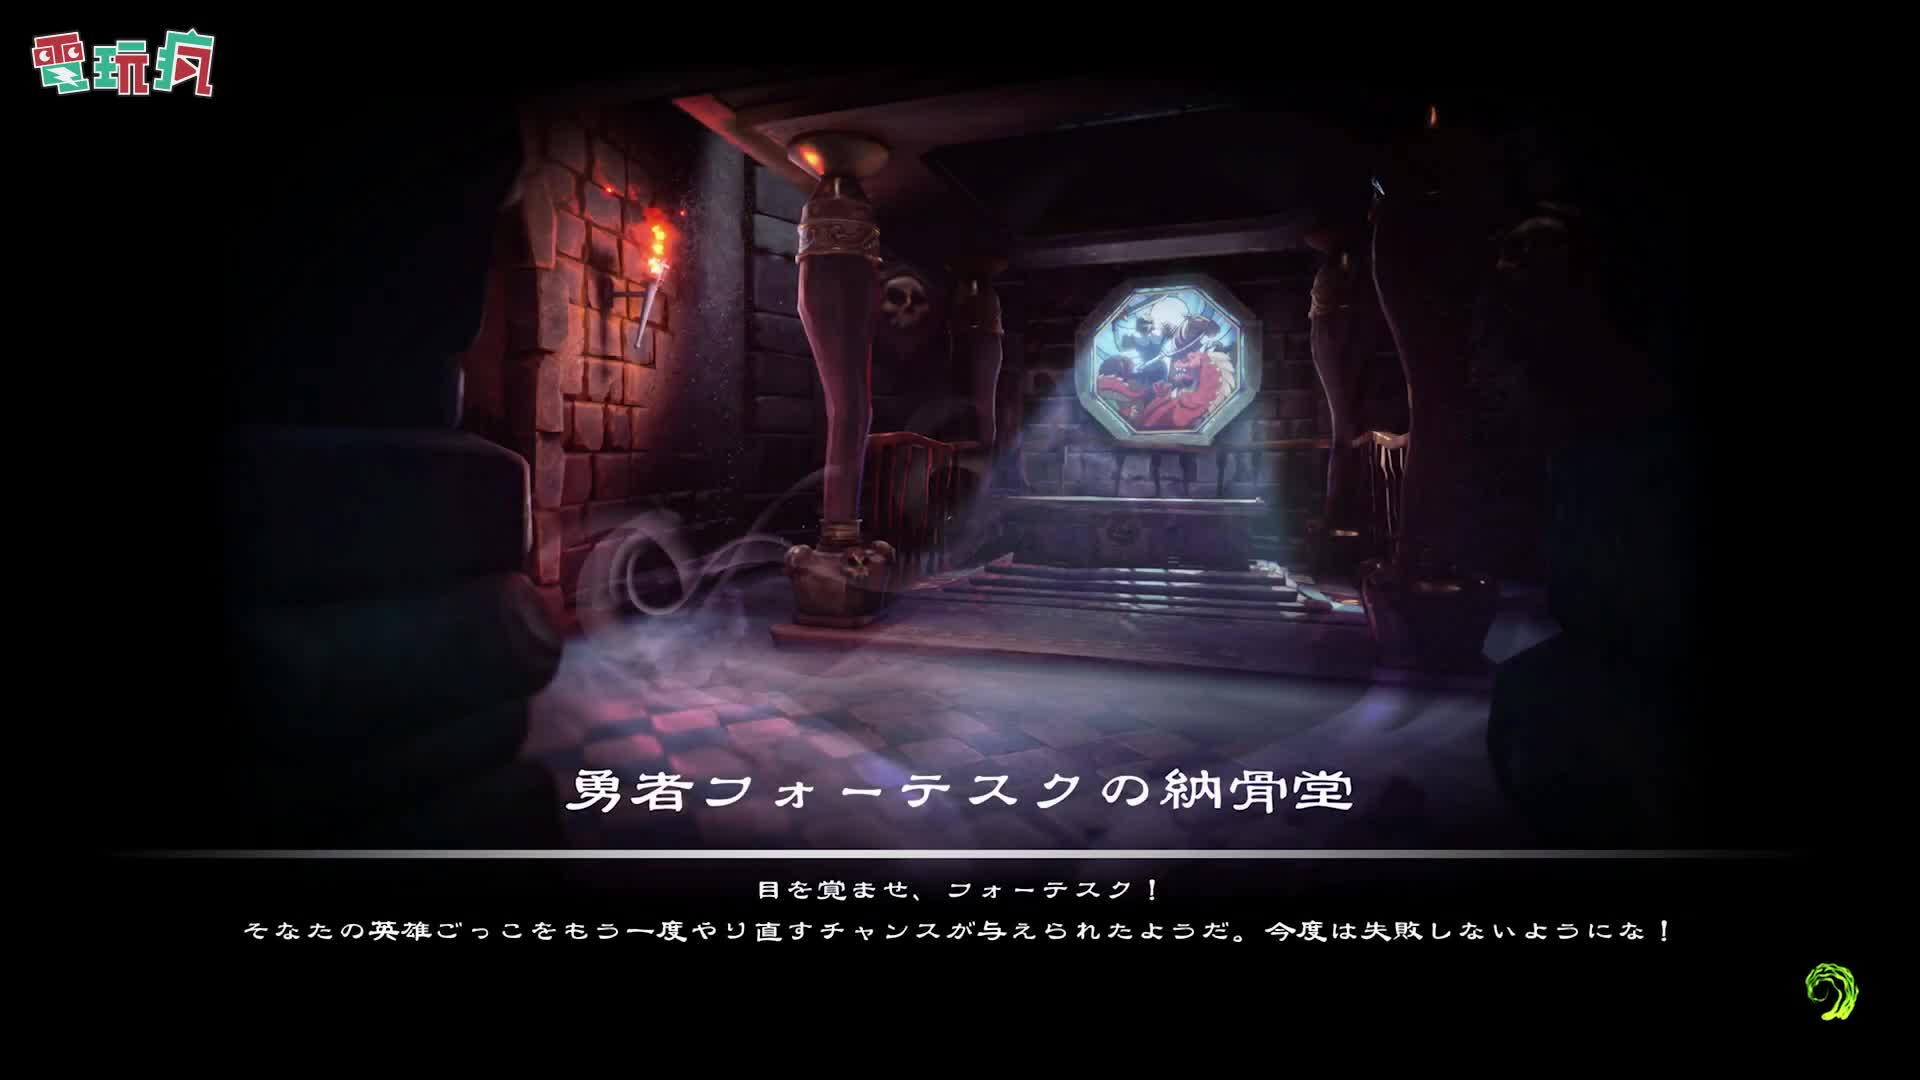 MediEvil - Gameplay Footage [HD] screen capture